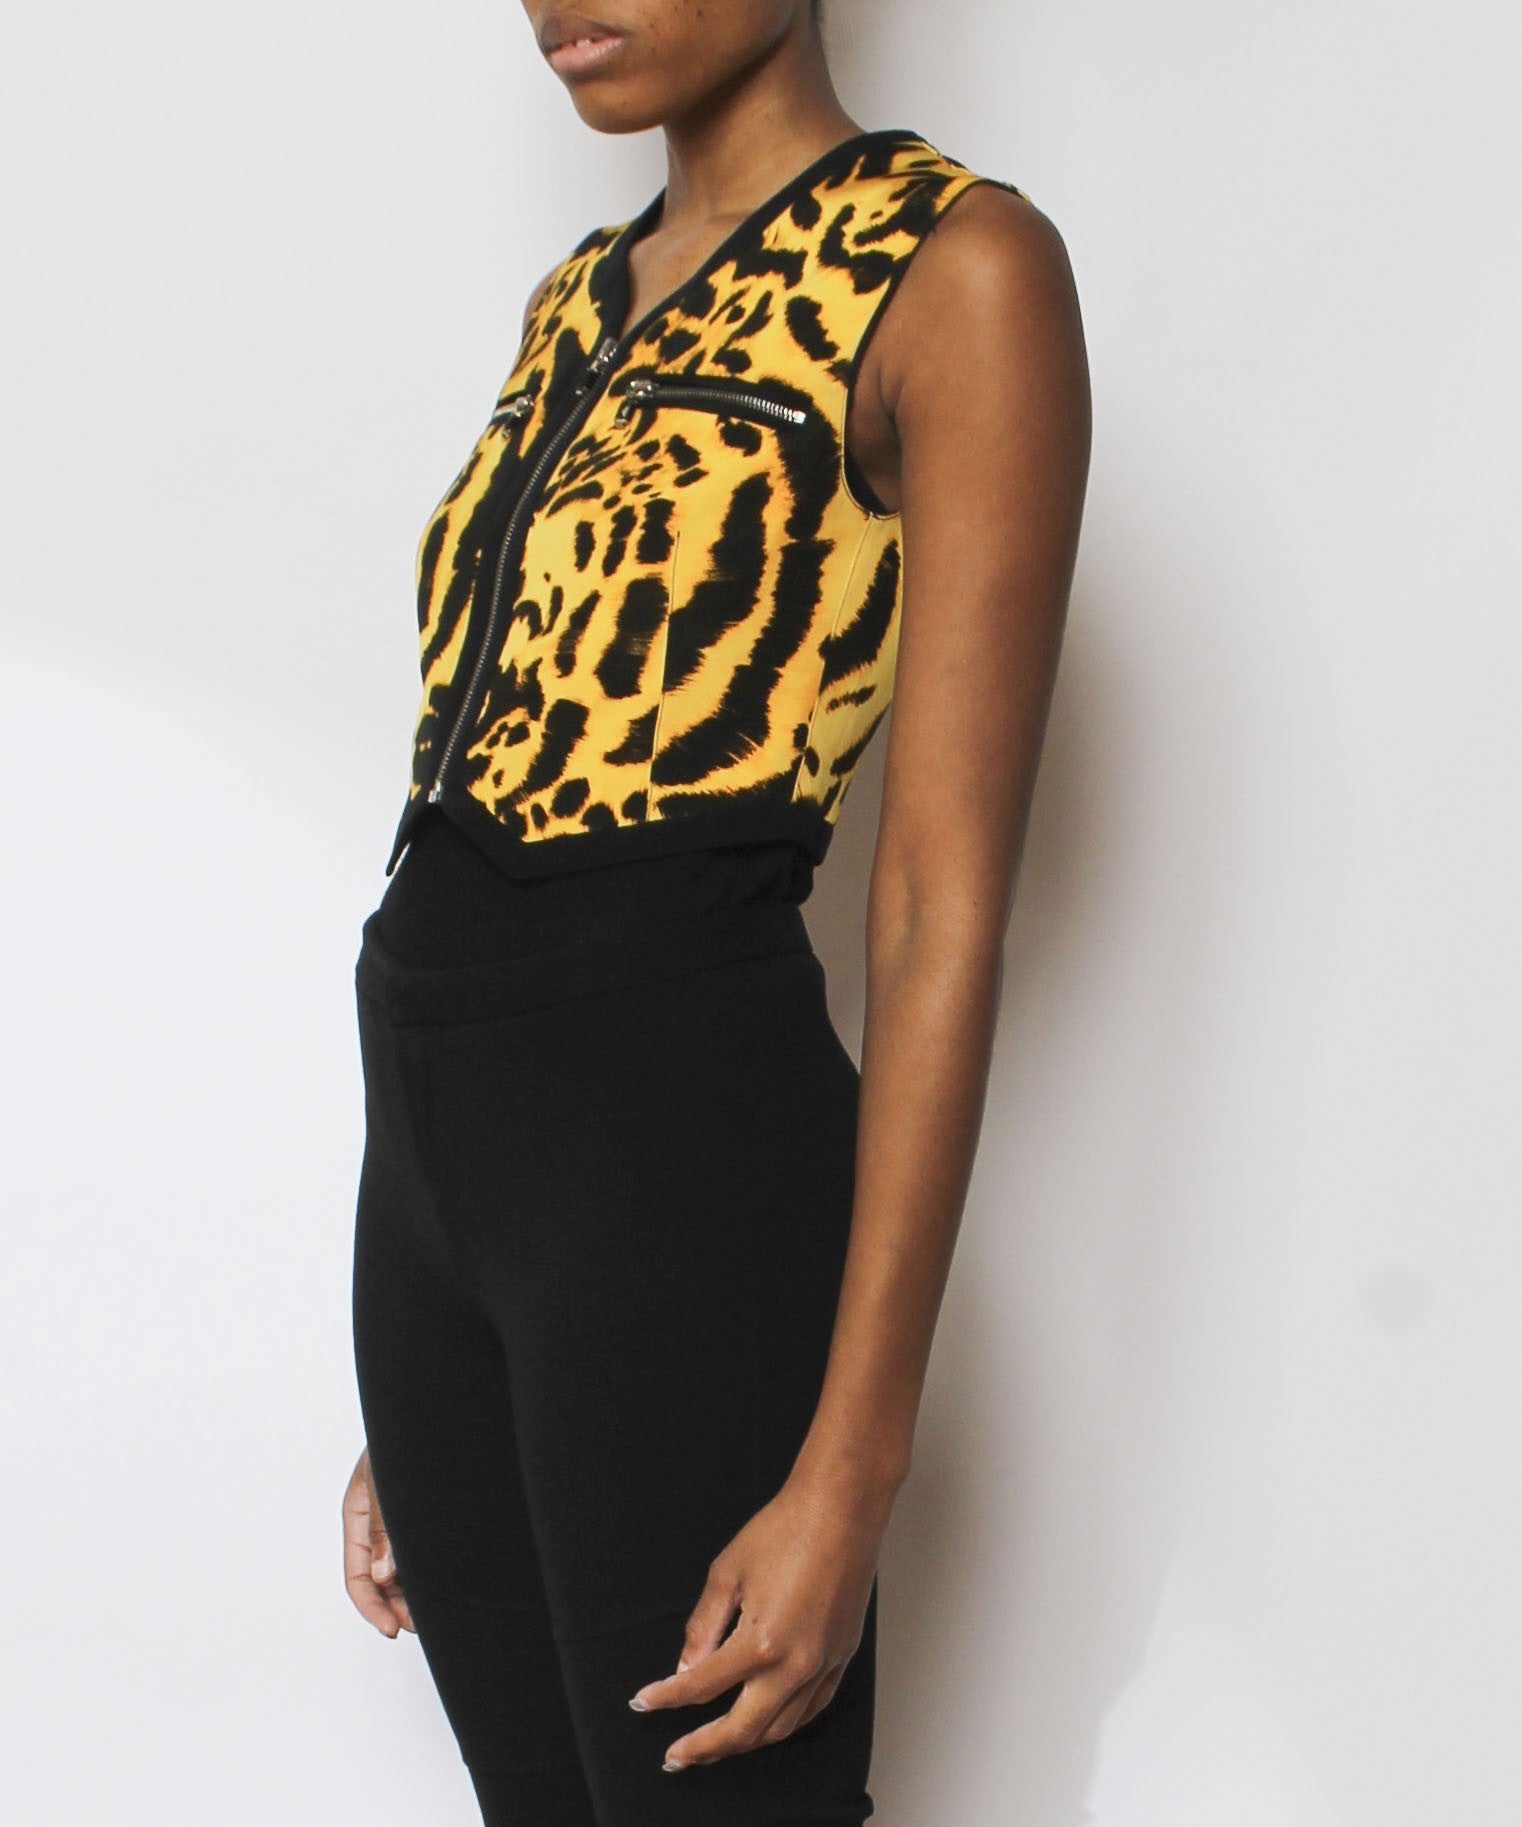 Versace Black and Gold Silk Leopard Print Vest - C.Madeleine's